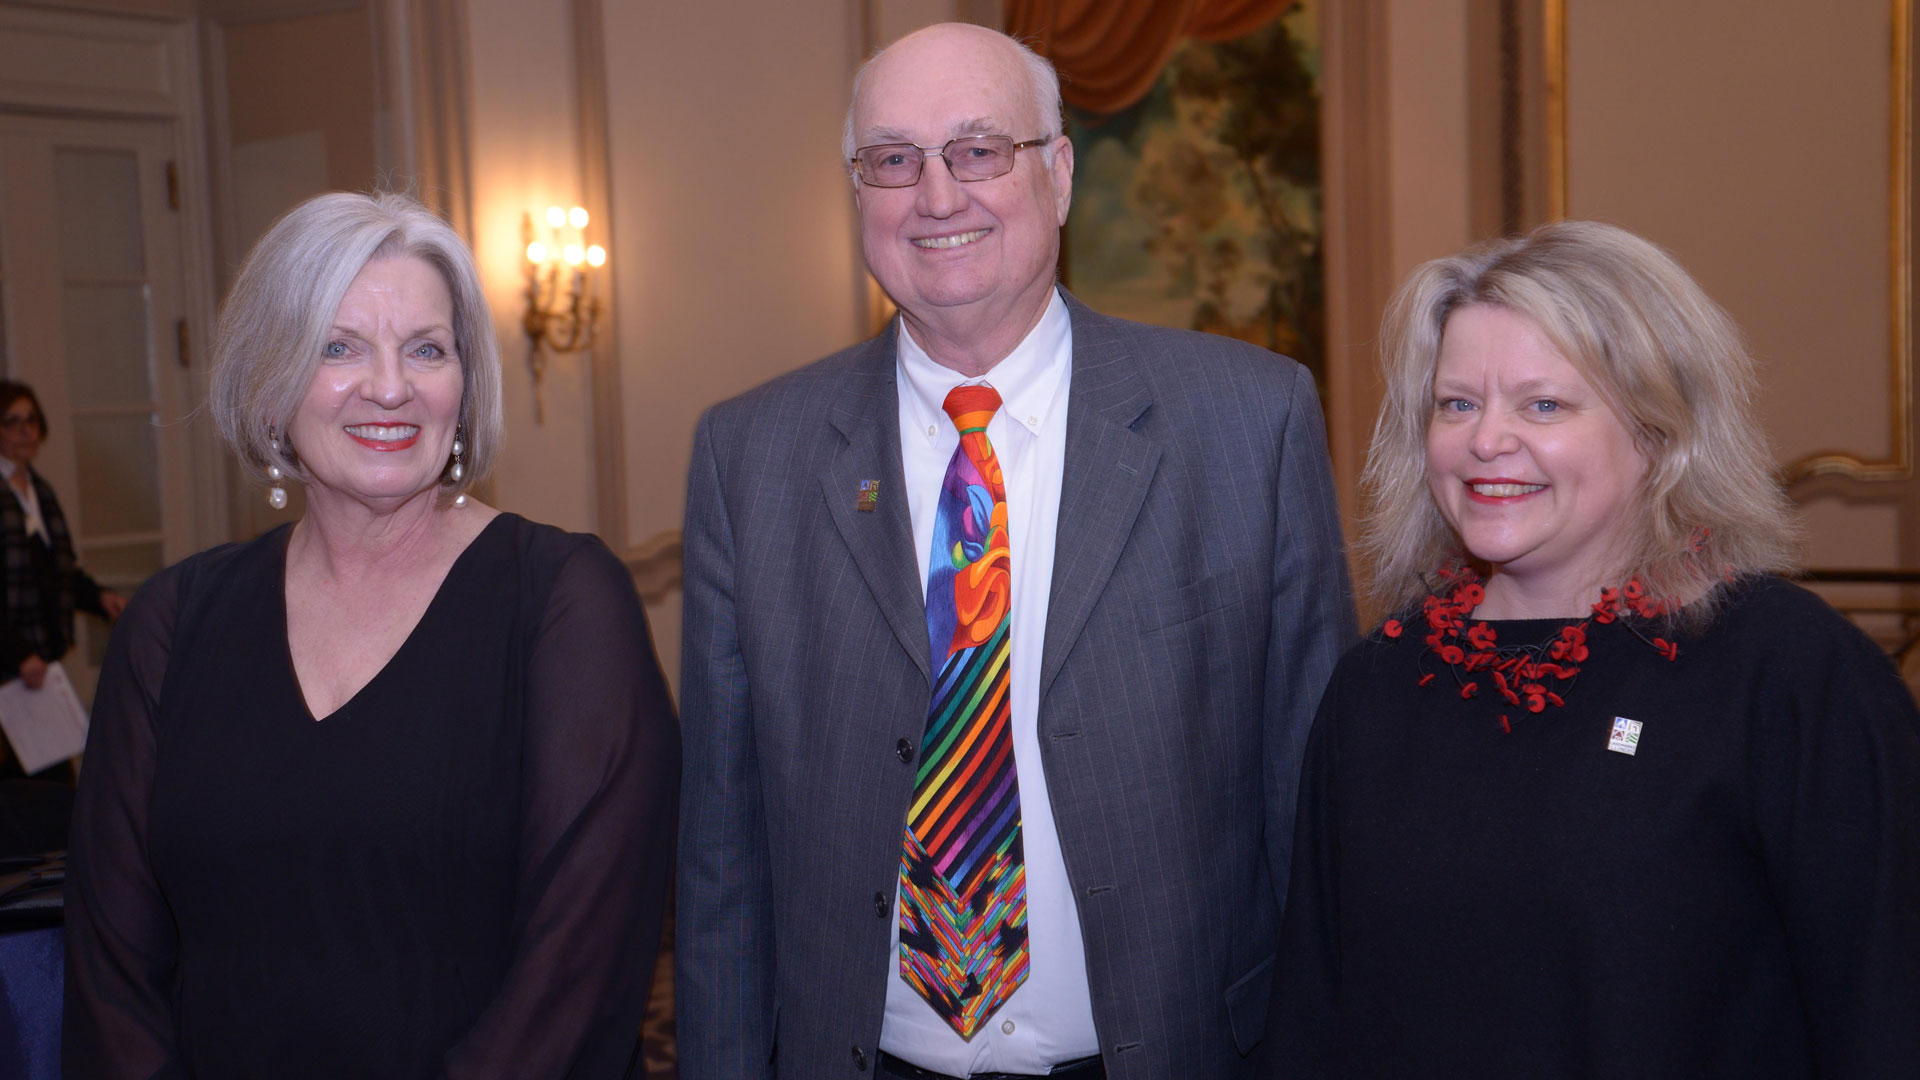 Image of Gary Anderson with Julie Carpenter and Anne Puotinen from Landmarks Illinois